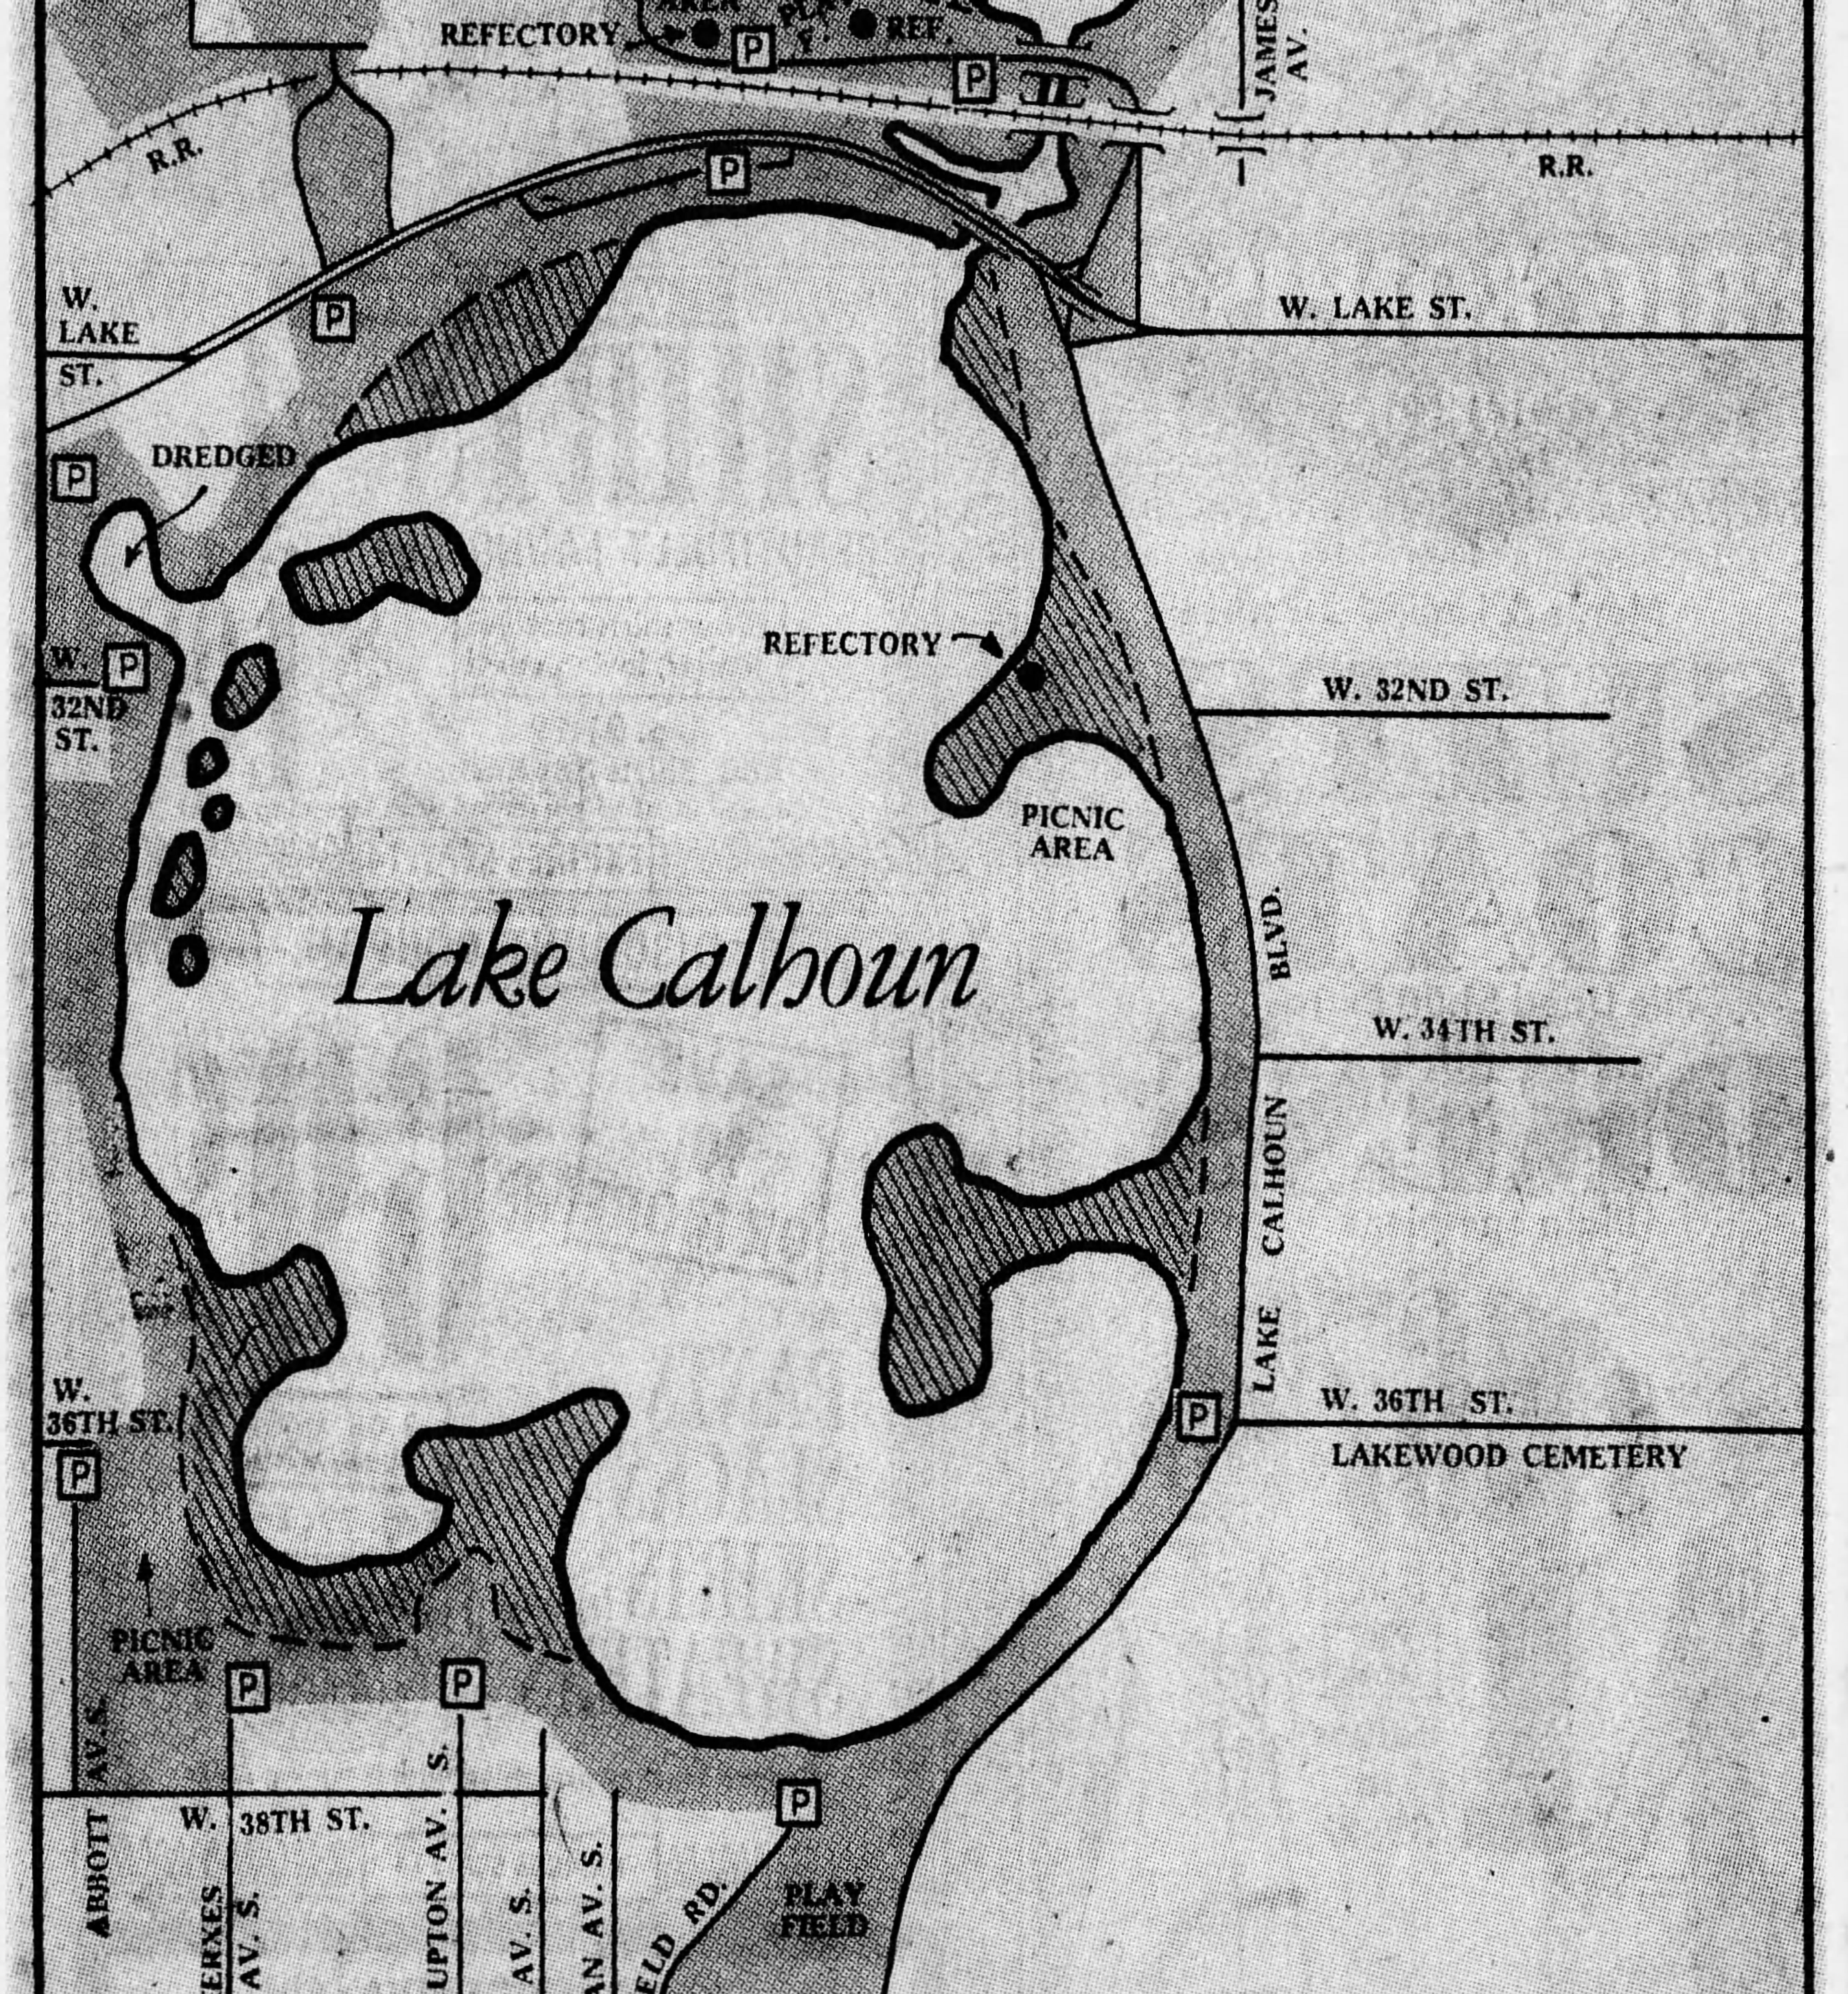 1970-09-07 The_Minneapolis_Star Lake Calhoun revisions